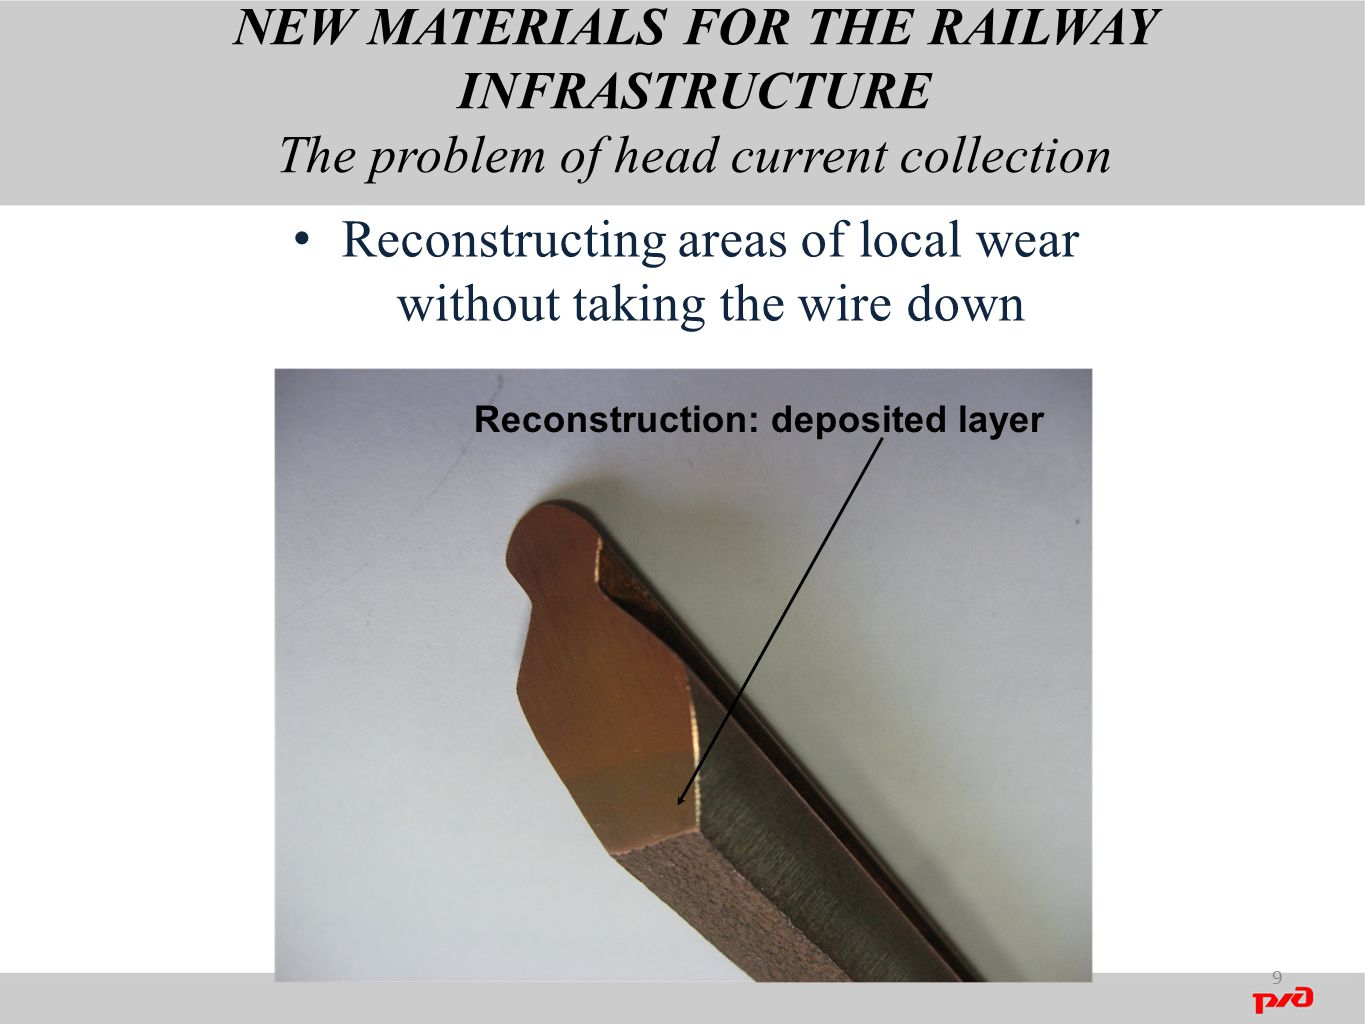 NEW MATERIALS FOR THE RAILWAY INFRASTRUCTURE The problem of head current collection 9 Reconstructing areas of local wear without taking the wire down Reconstruction: deposited layer